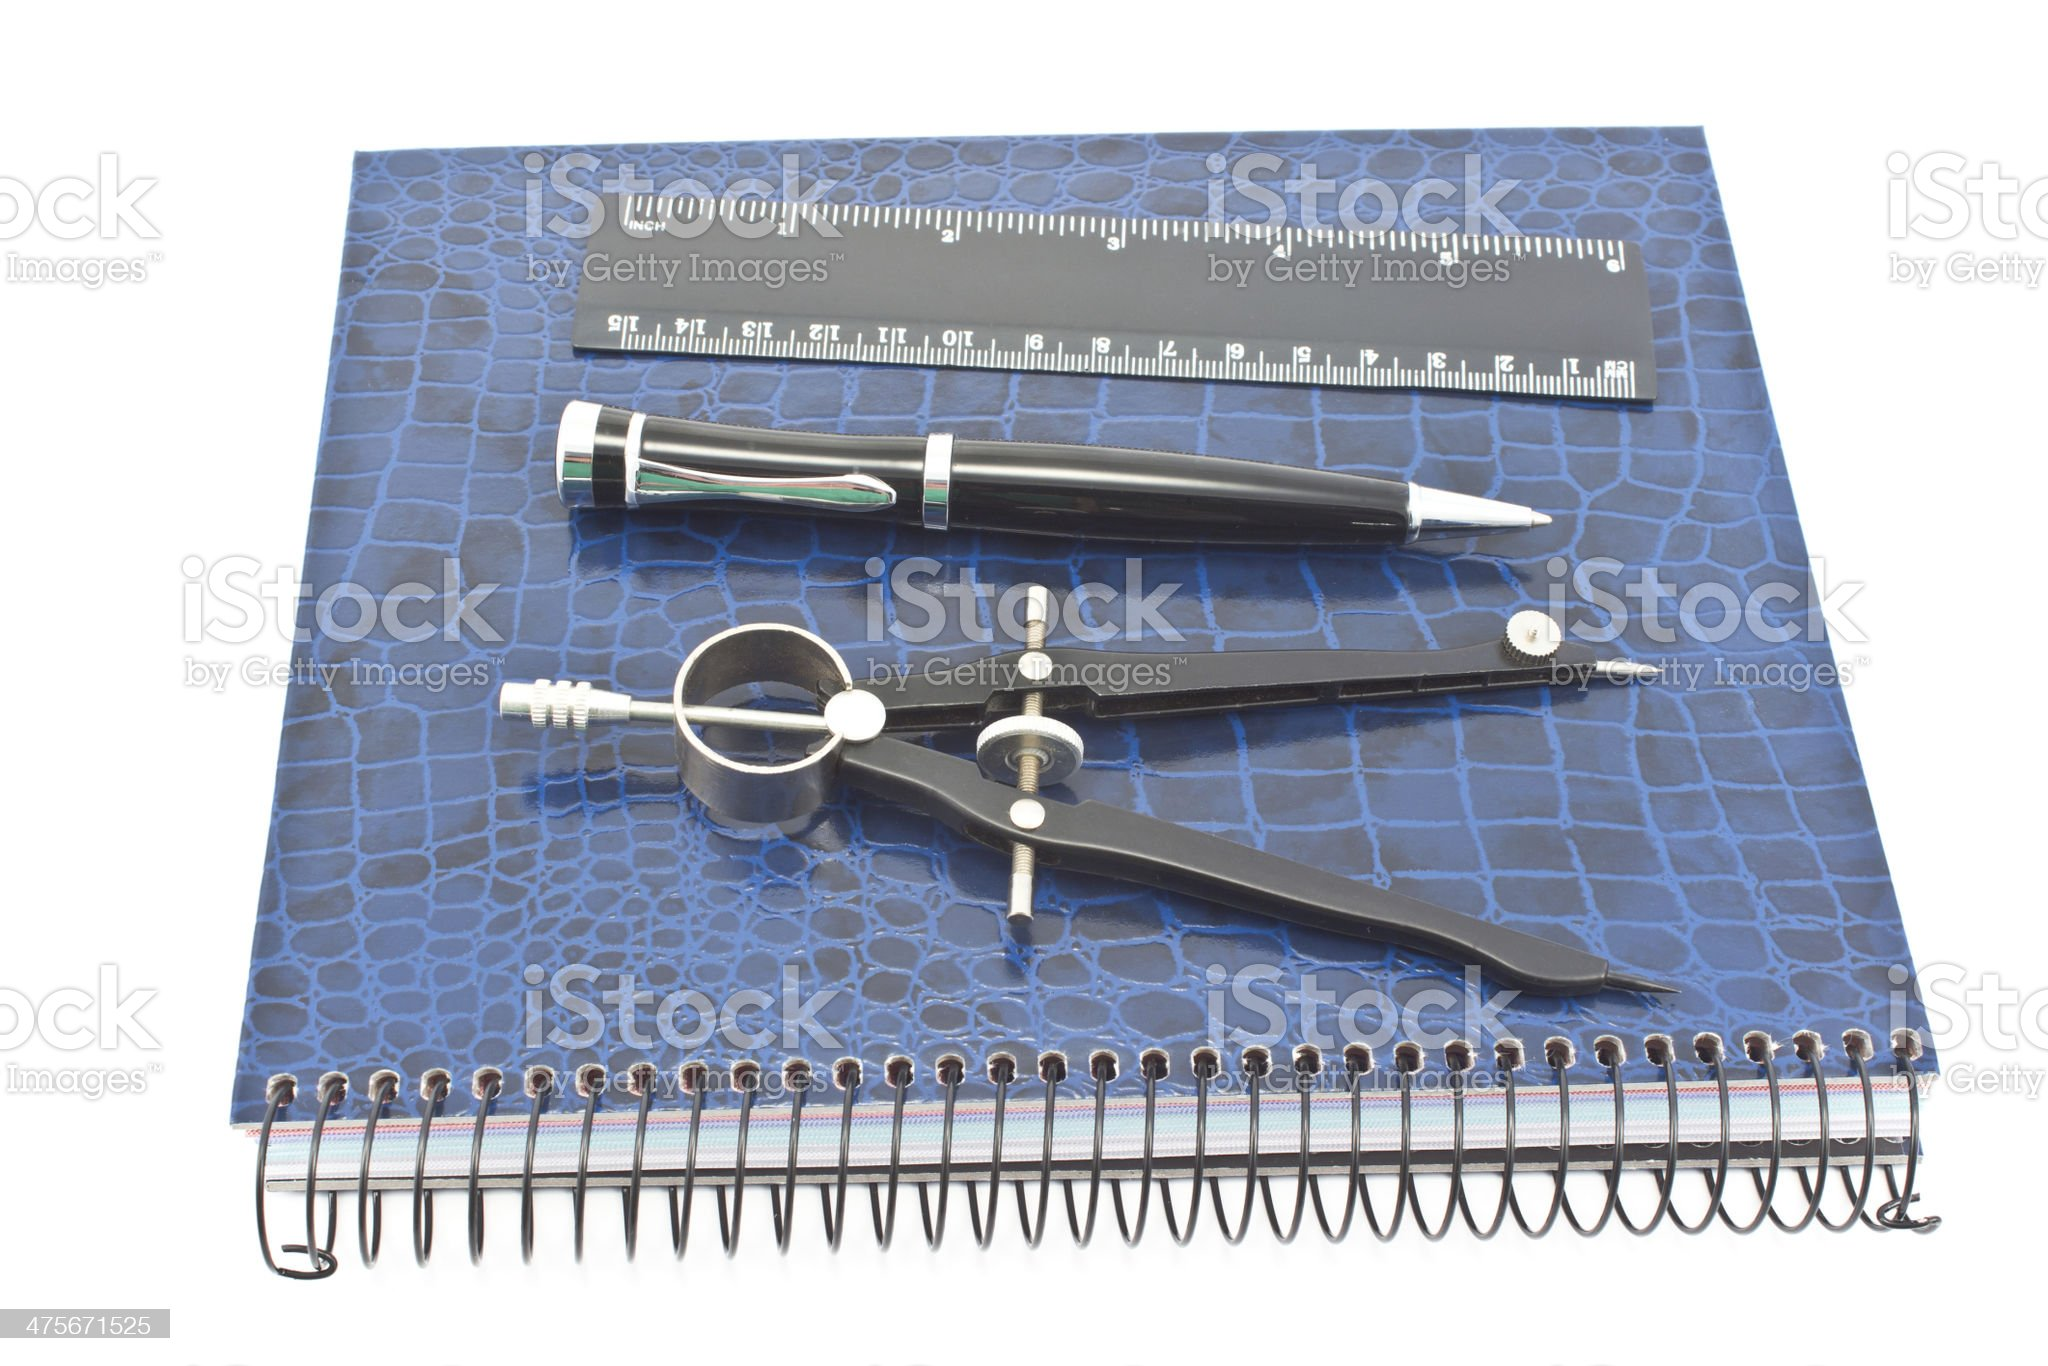 Notebook with pen, drawing compass and ruler isolated on white royalty-free stock photo